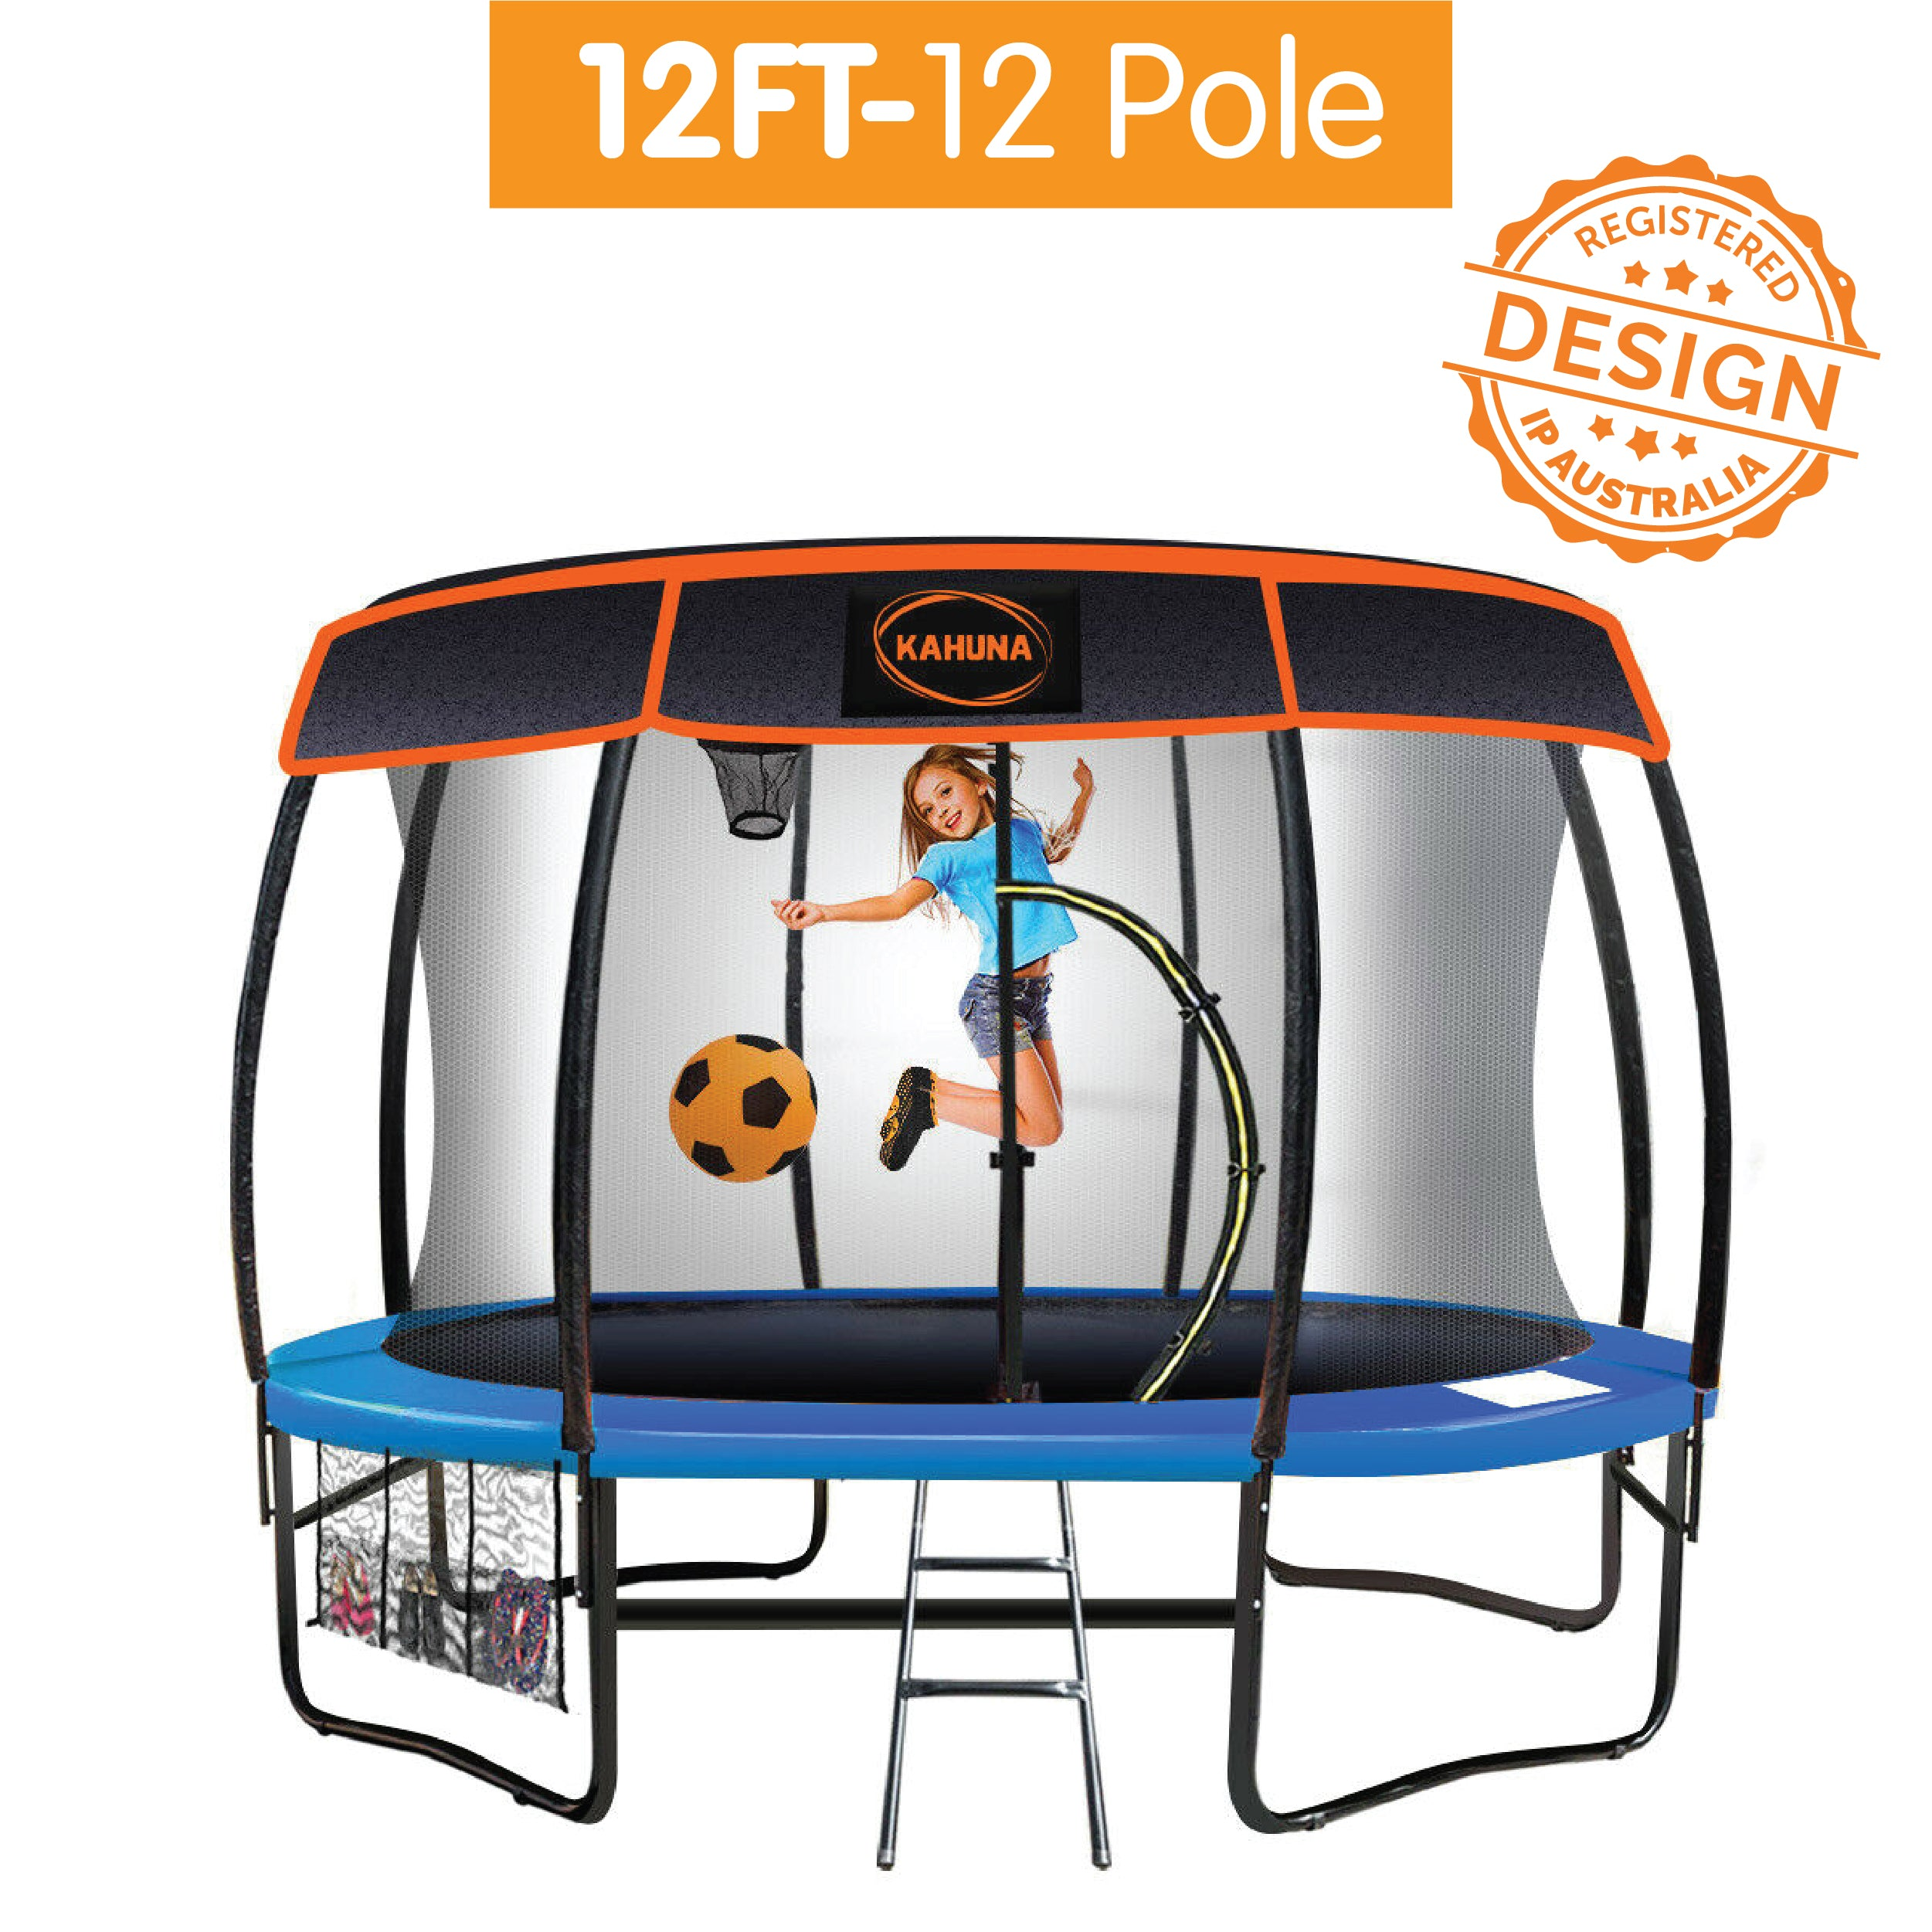 12ft-12 Pole Kahuna Trampoline Roof Shade Cover